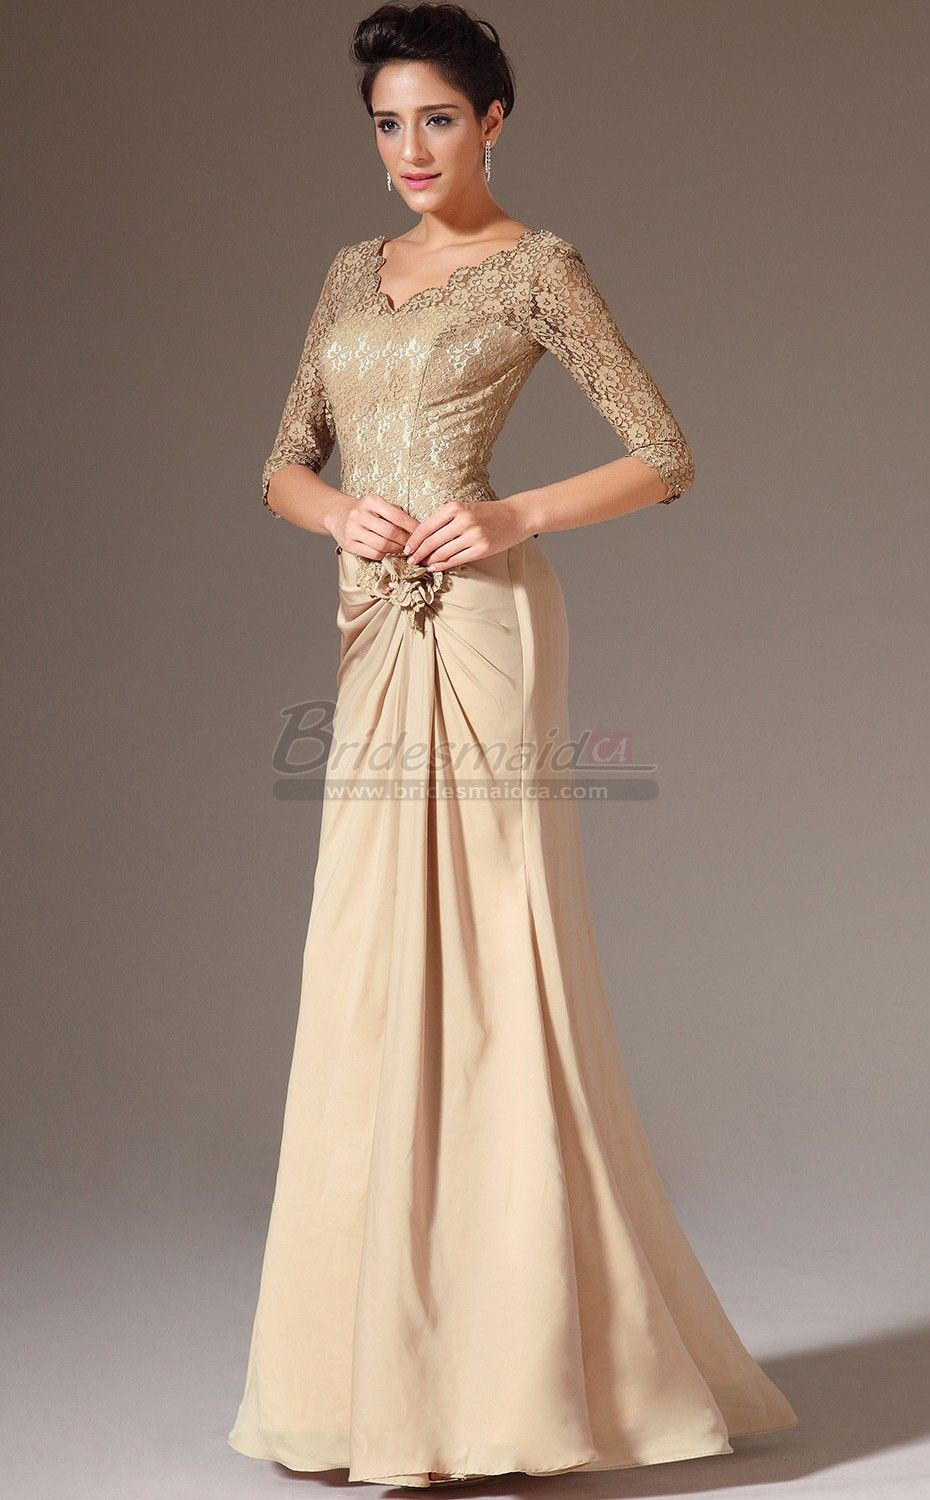 Gold v neck long chiffon and lace mermaid bridesmaid dress with gold v neck long chiffon and lace mermaid bridesmaid dress with half sleeve jt ca1379 ombrellifo Image collections